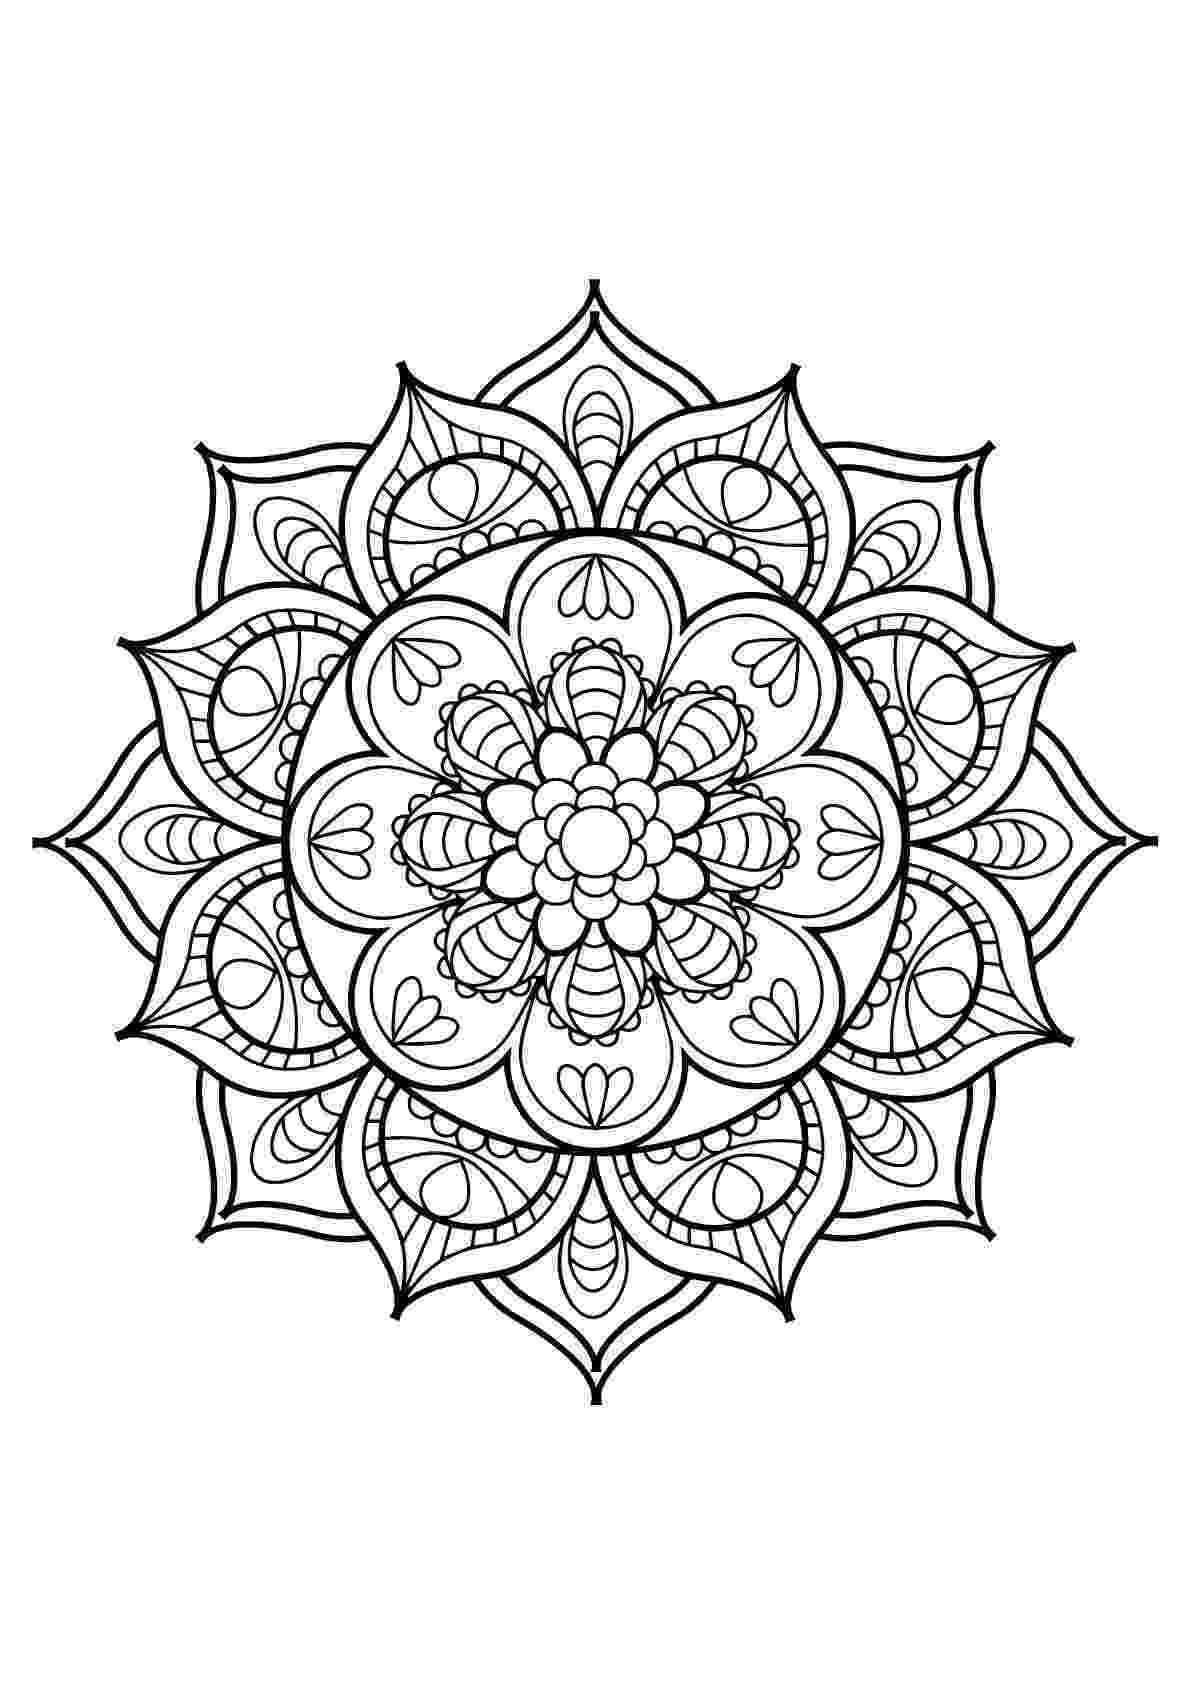 coloring book for me free free russian doll coloring page from wwwcoloring pages for coloring free me book